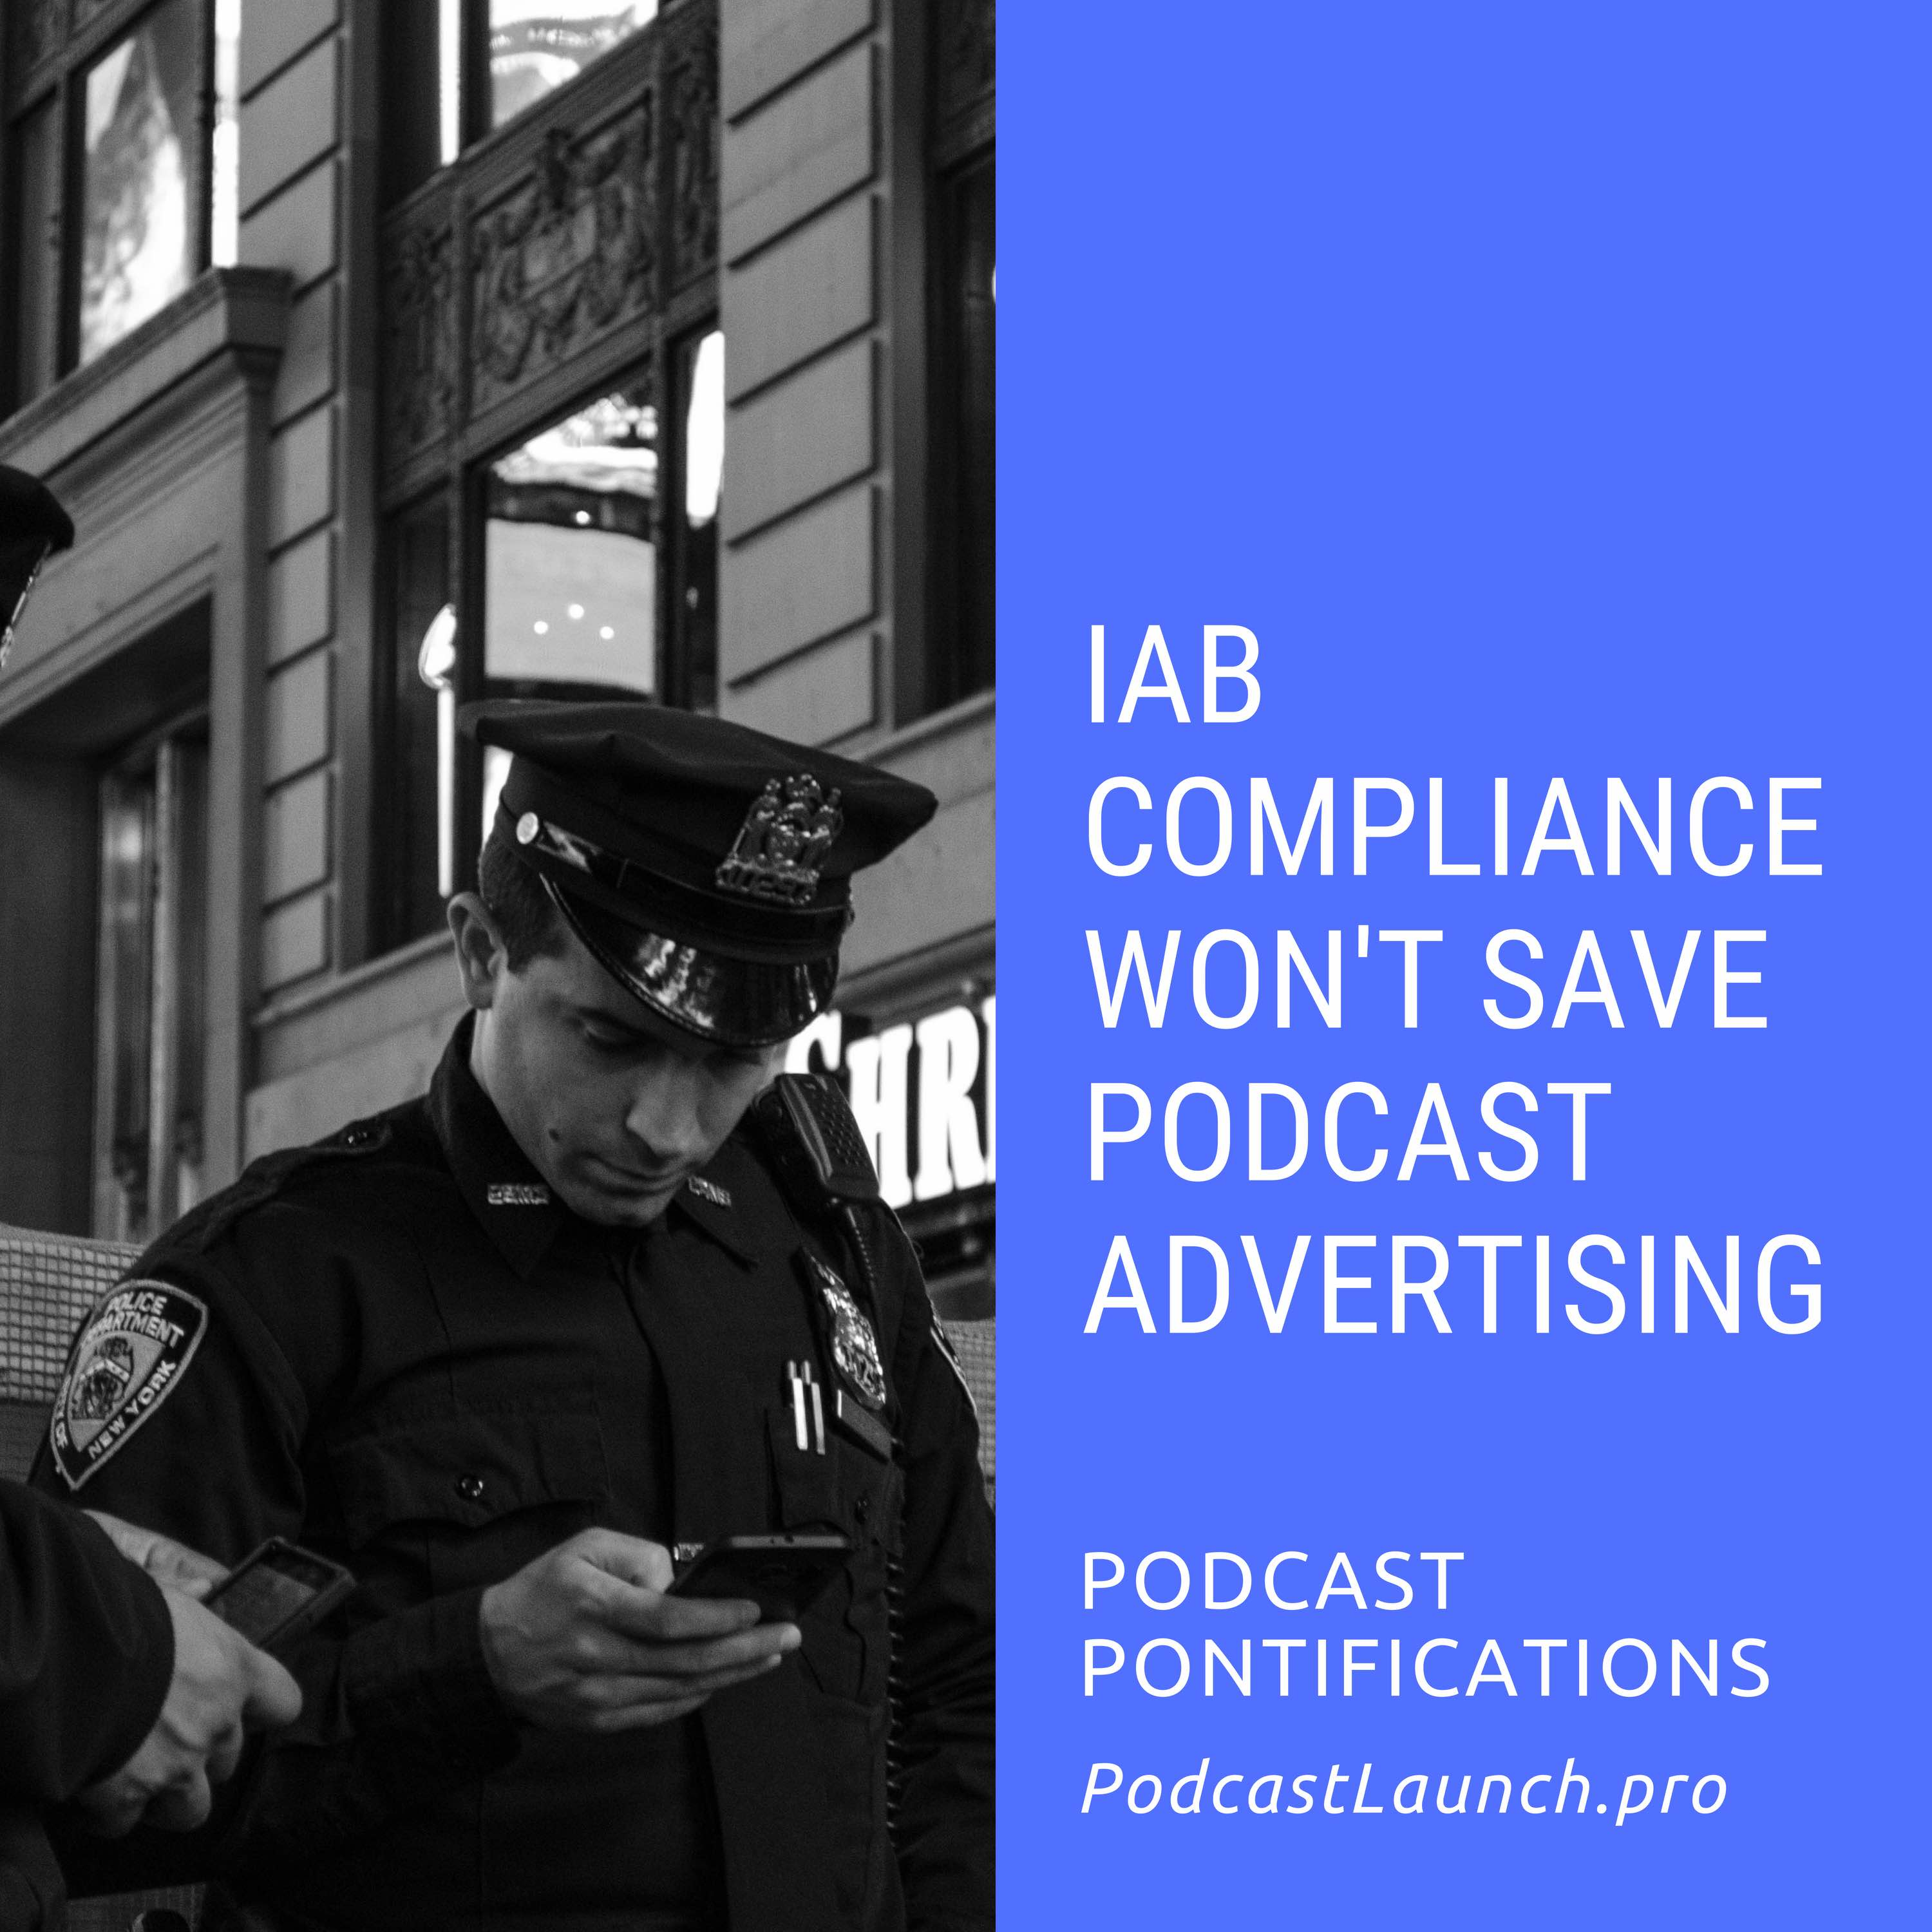 IAB Compliance Won't Save Podcast Advertising